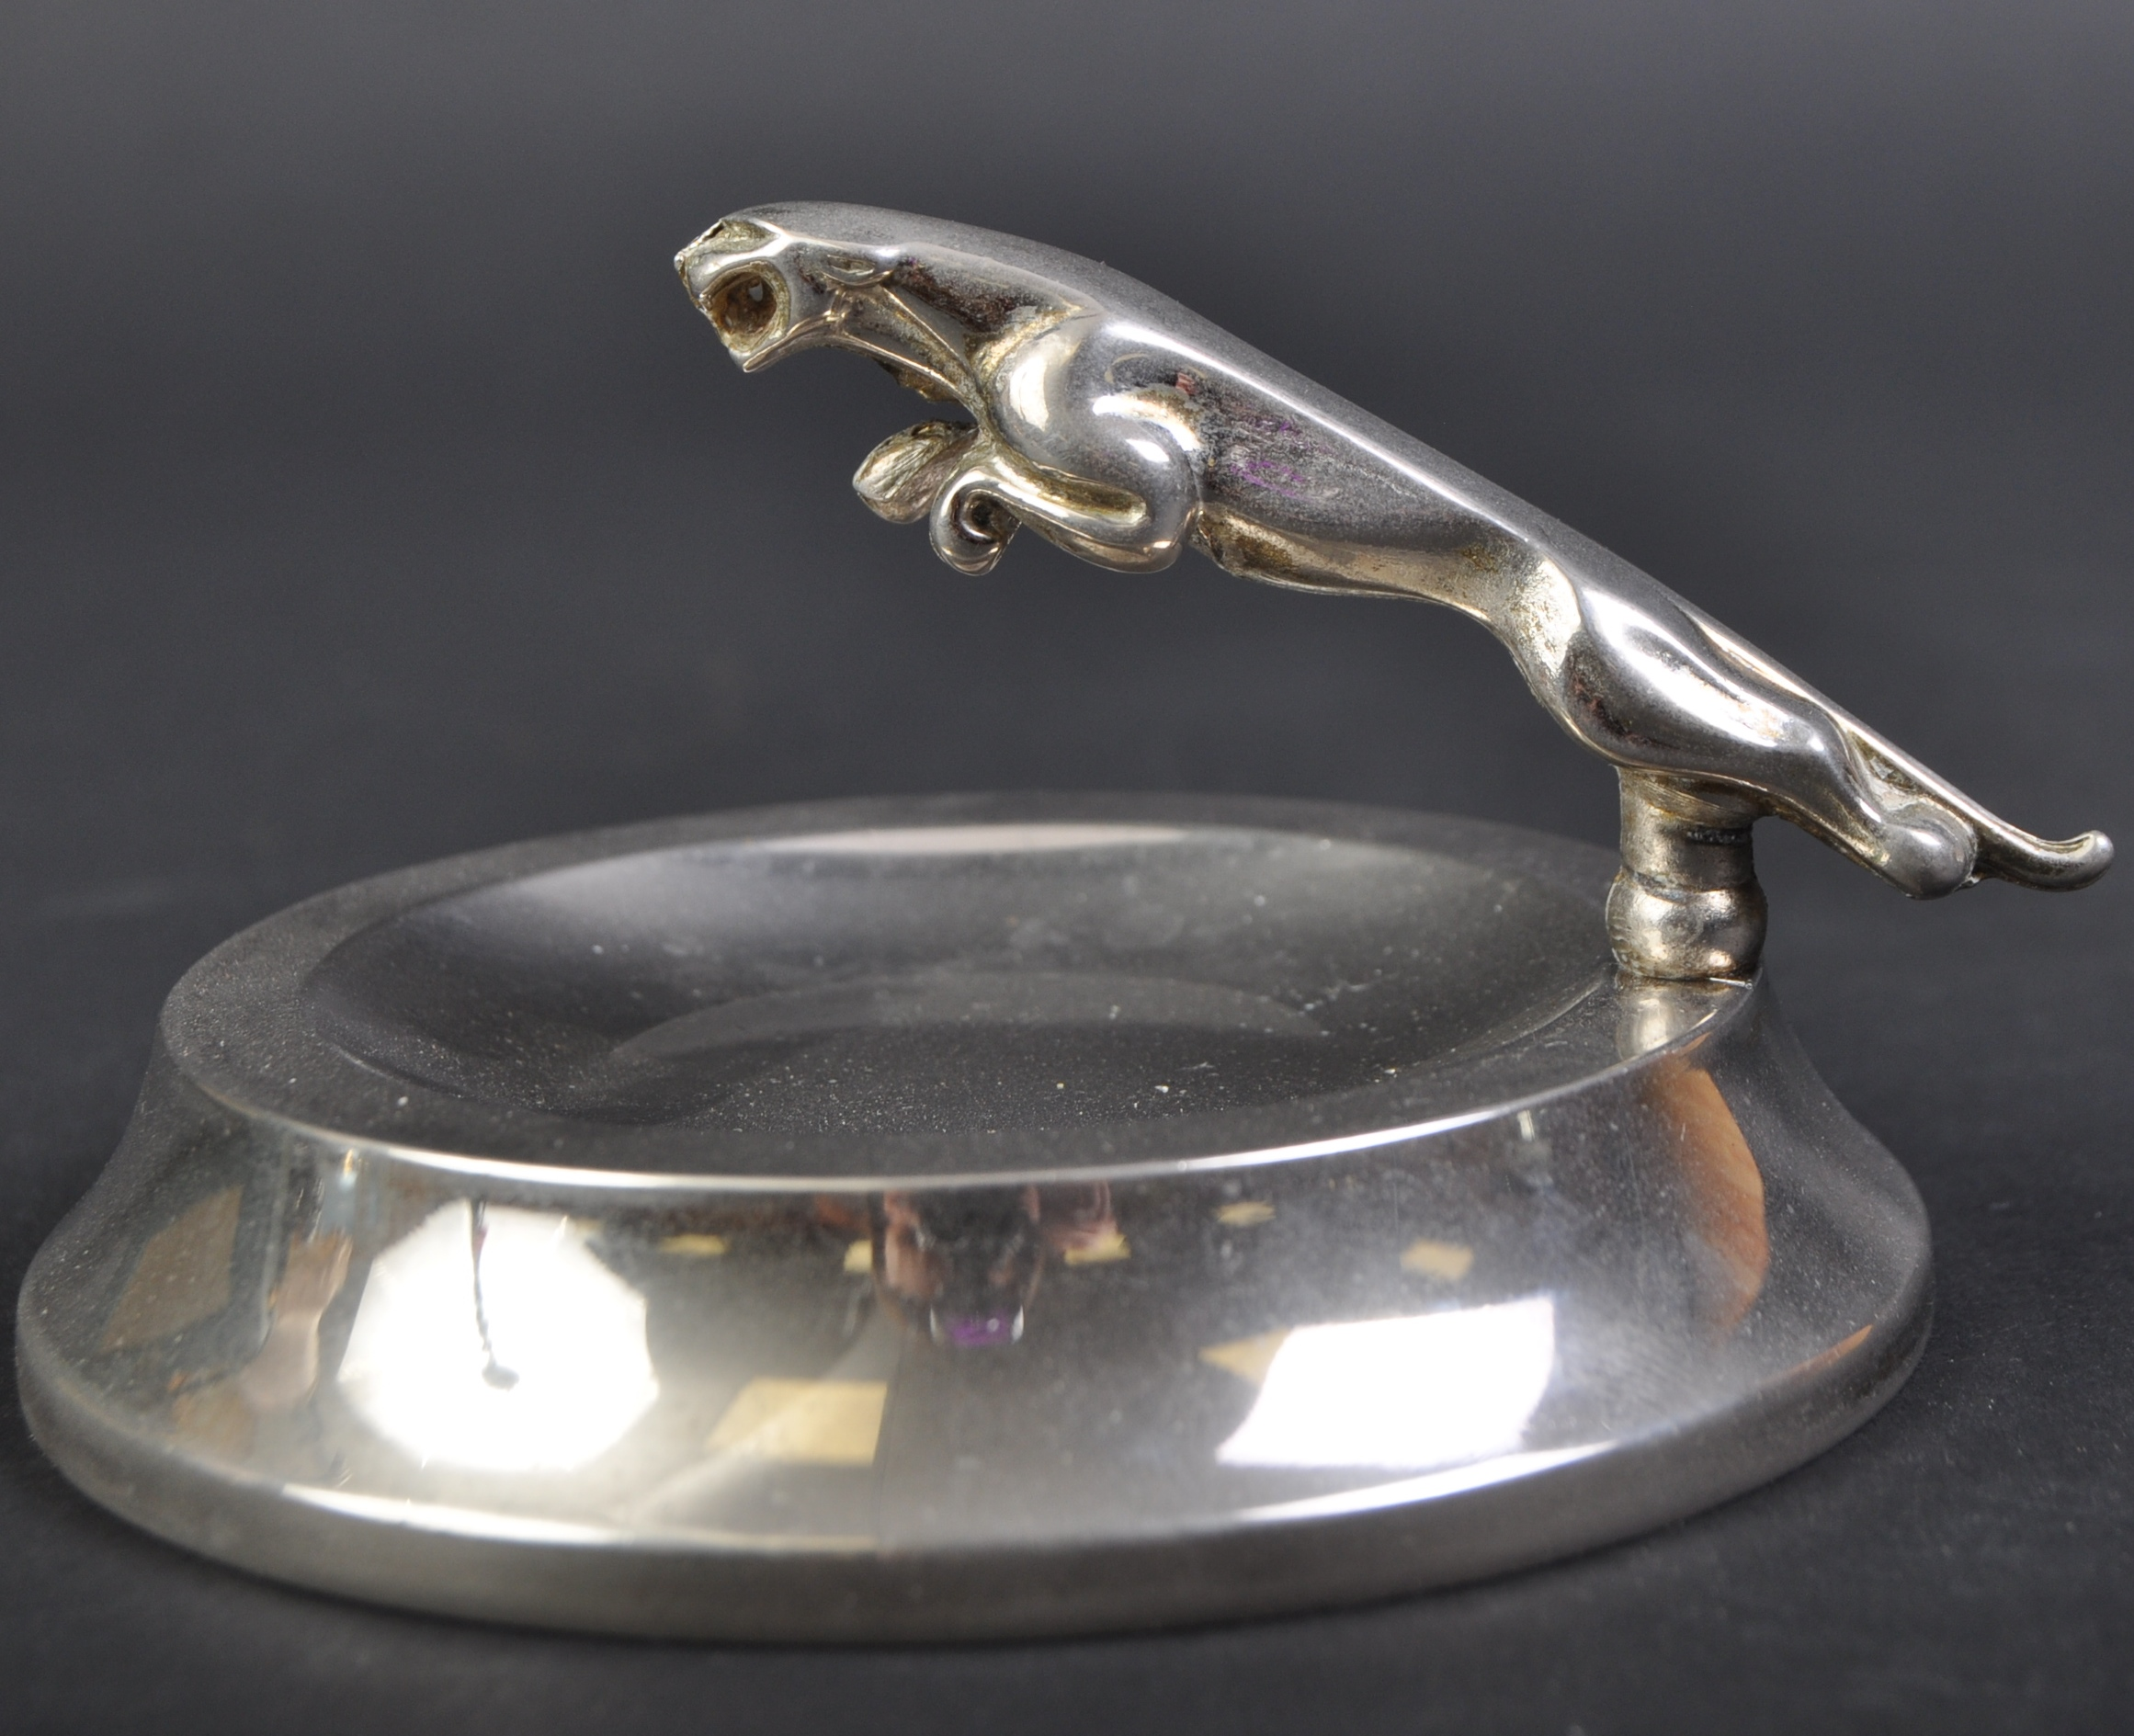 JAGUAR - SMALL 20TH CENTURY PROMOTIONAL ASHTRAY WITH MASCOT - Image 3 of 4